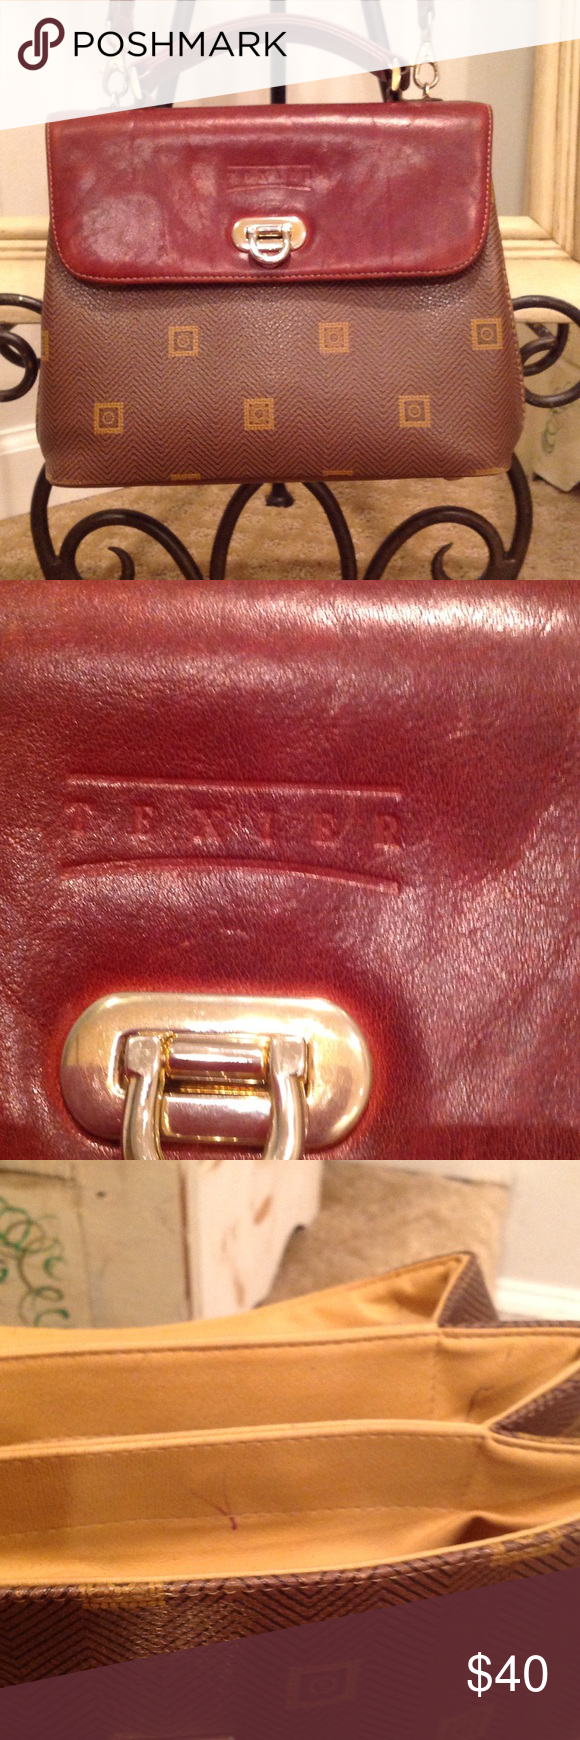 Texier Handbag Made In France Brown Satchel With Removable Shoulder Stap Nail Heads